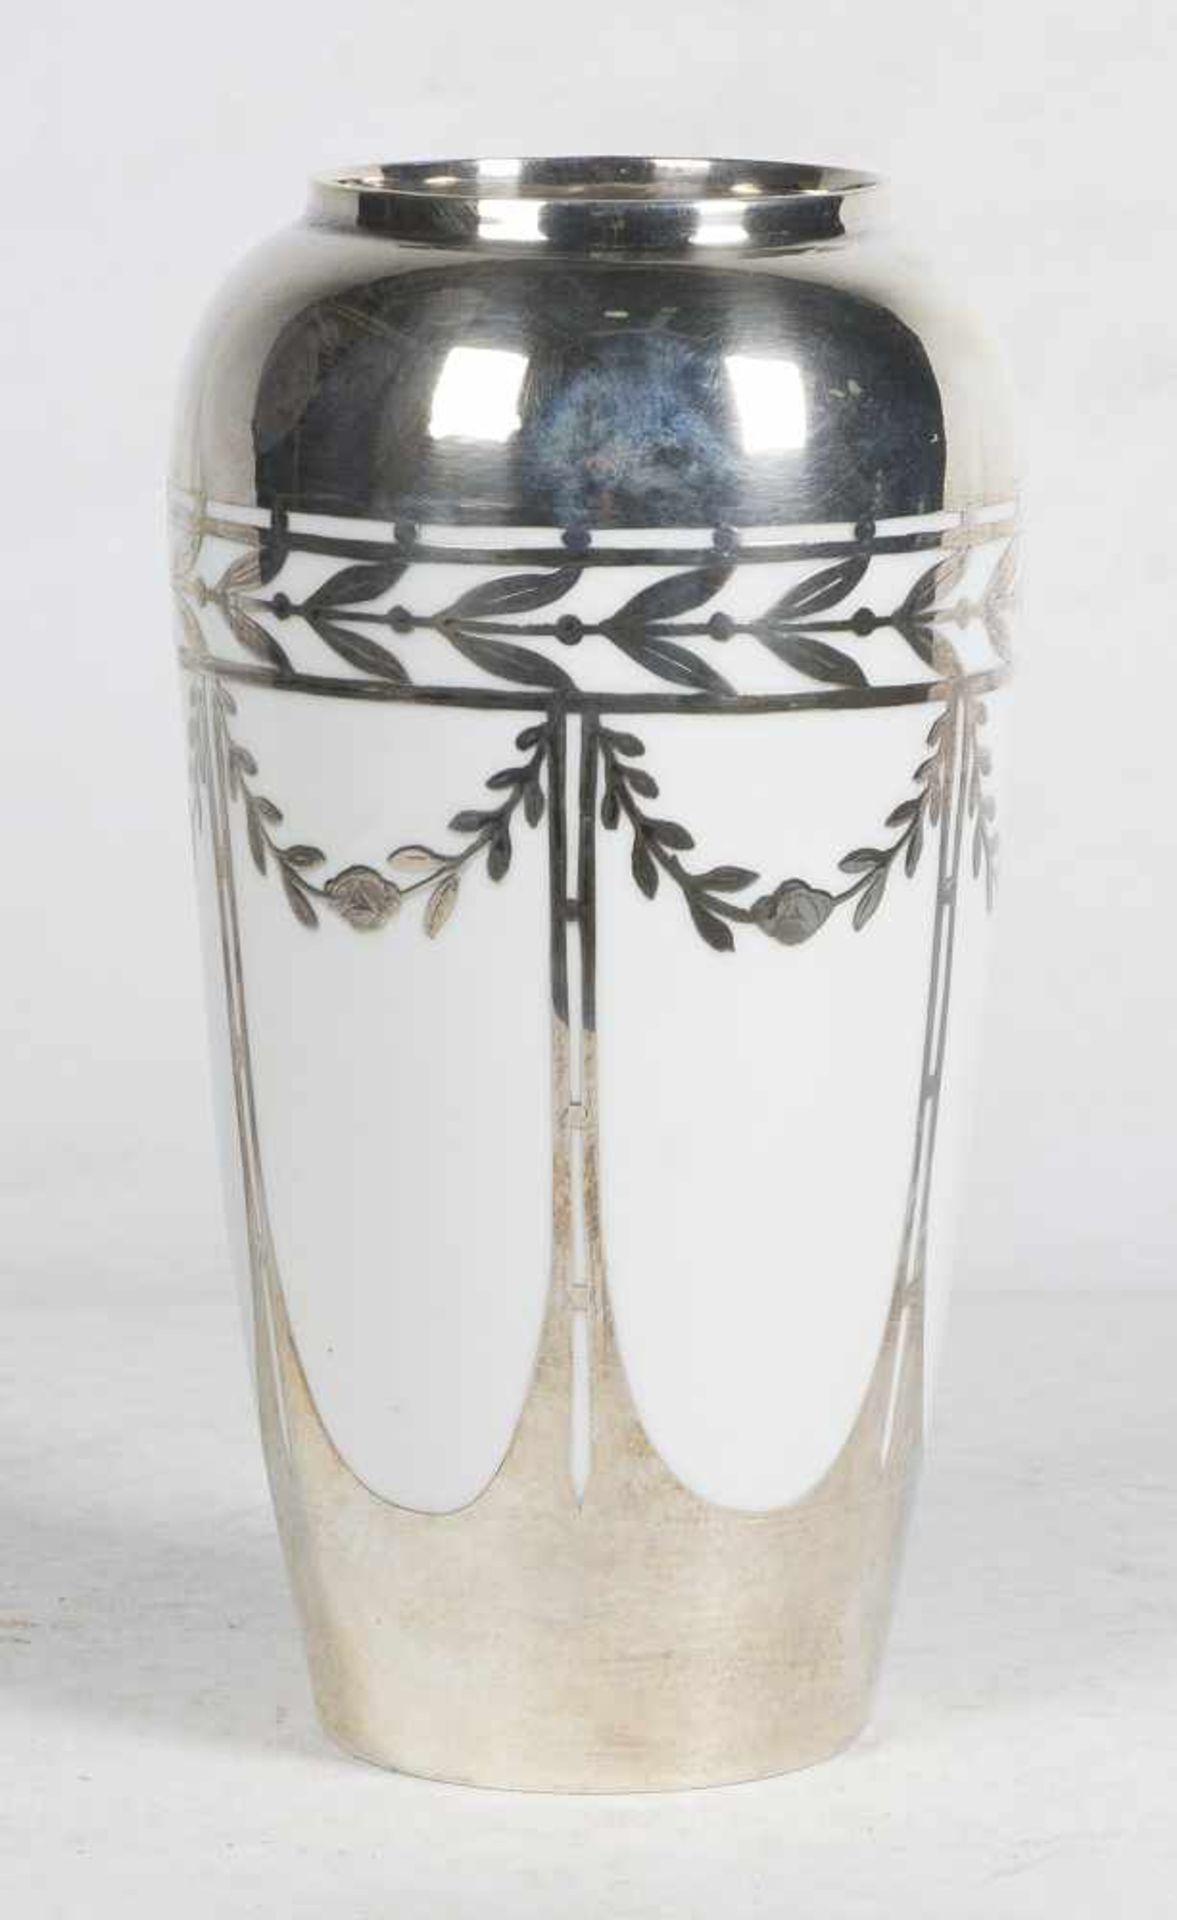 Los 51 - Porcelain and silver vase. Manufactured by Fraureuth. Germany. Art Deco. Circa 1925.